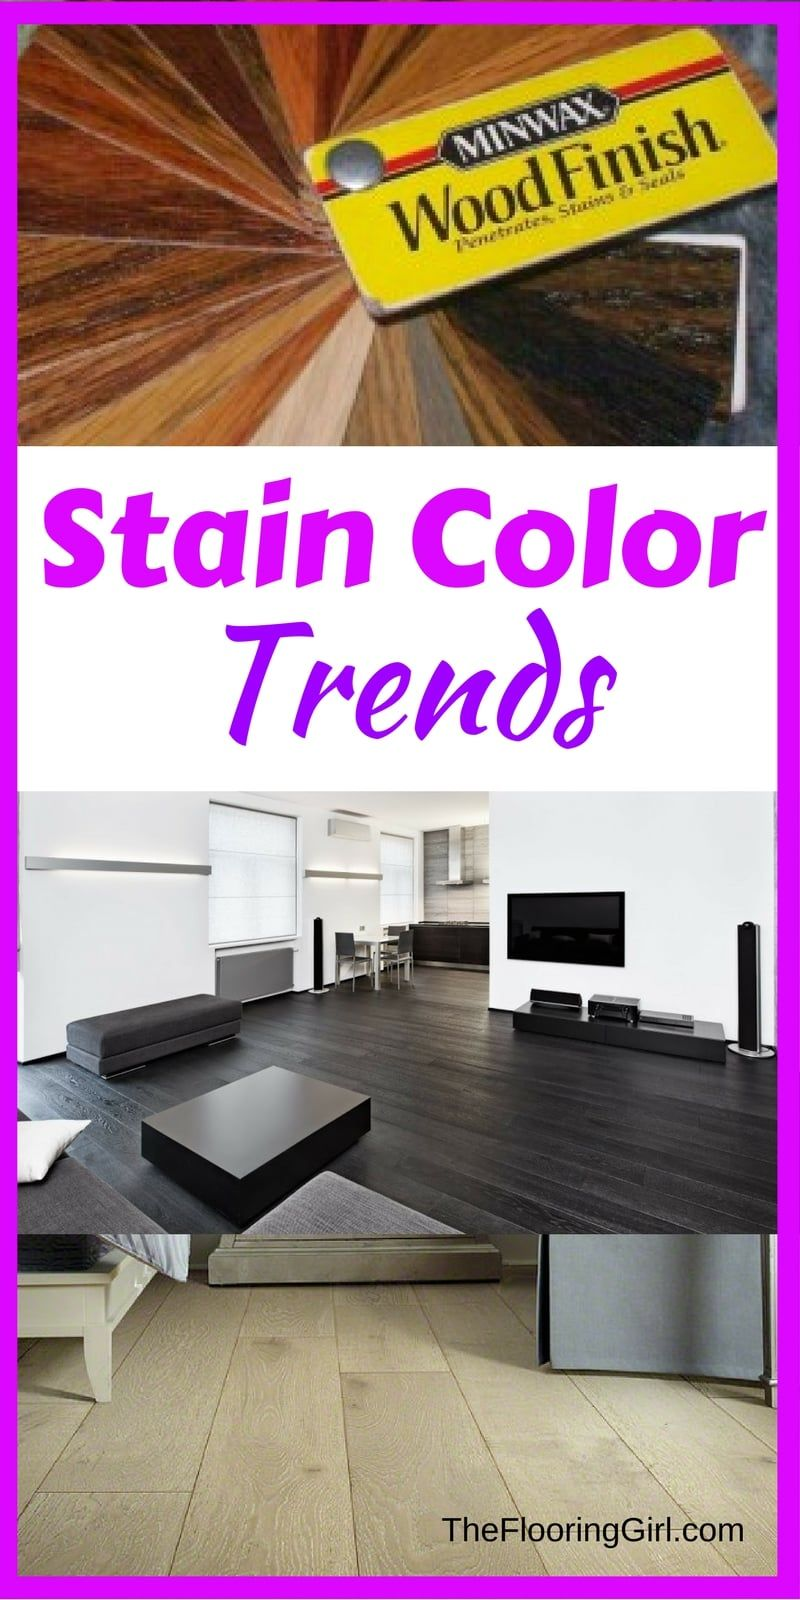 Hardwood flooring stain color trends dark stains woods and